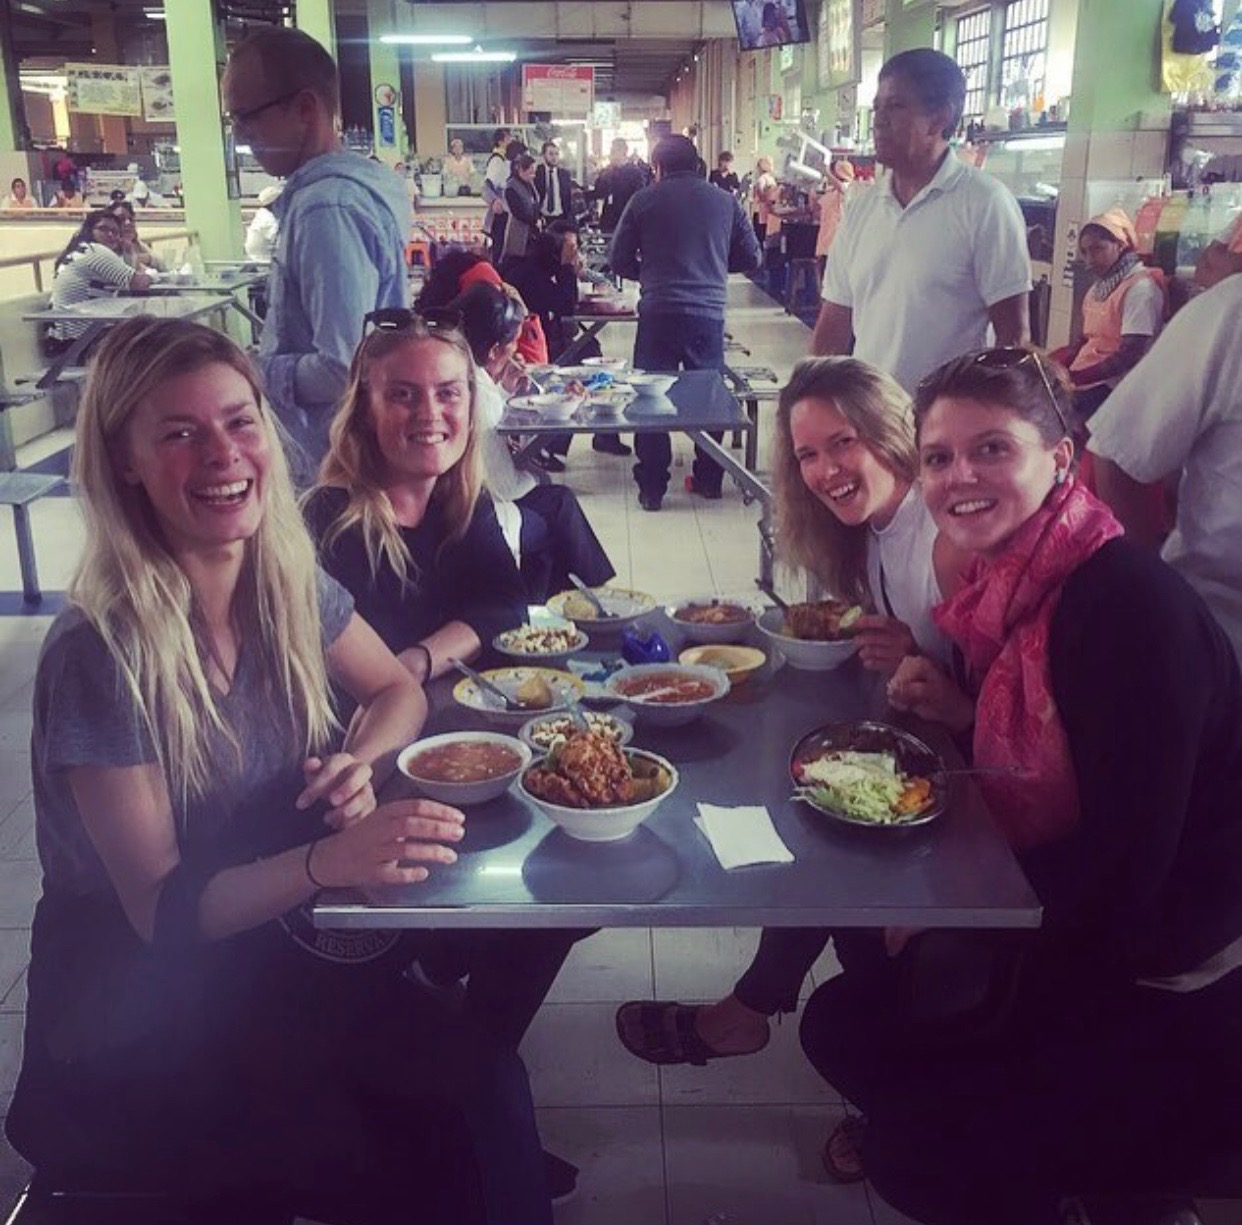 Enjoying a meal with friends from Community at Mercado Central.